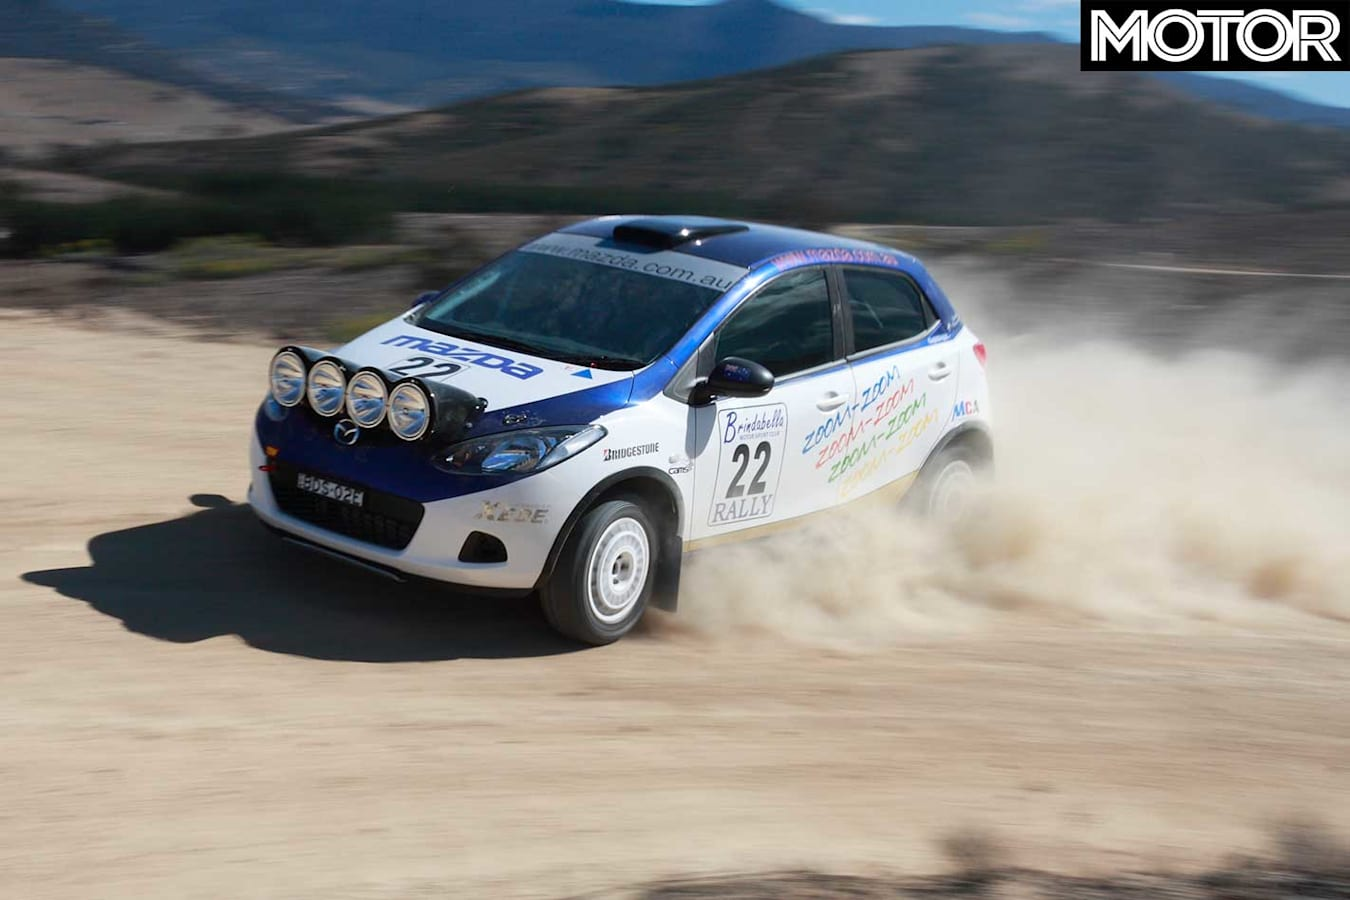 How To Drive A Rally Car Taking A Corner Jpg